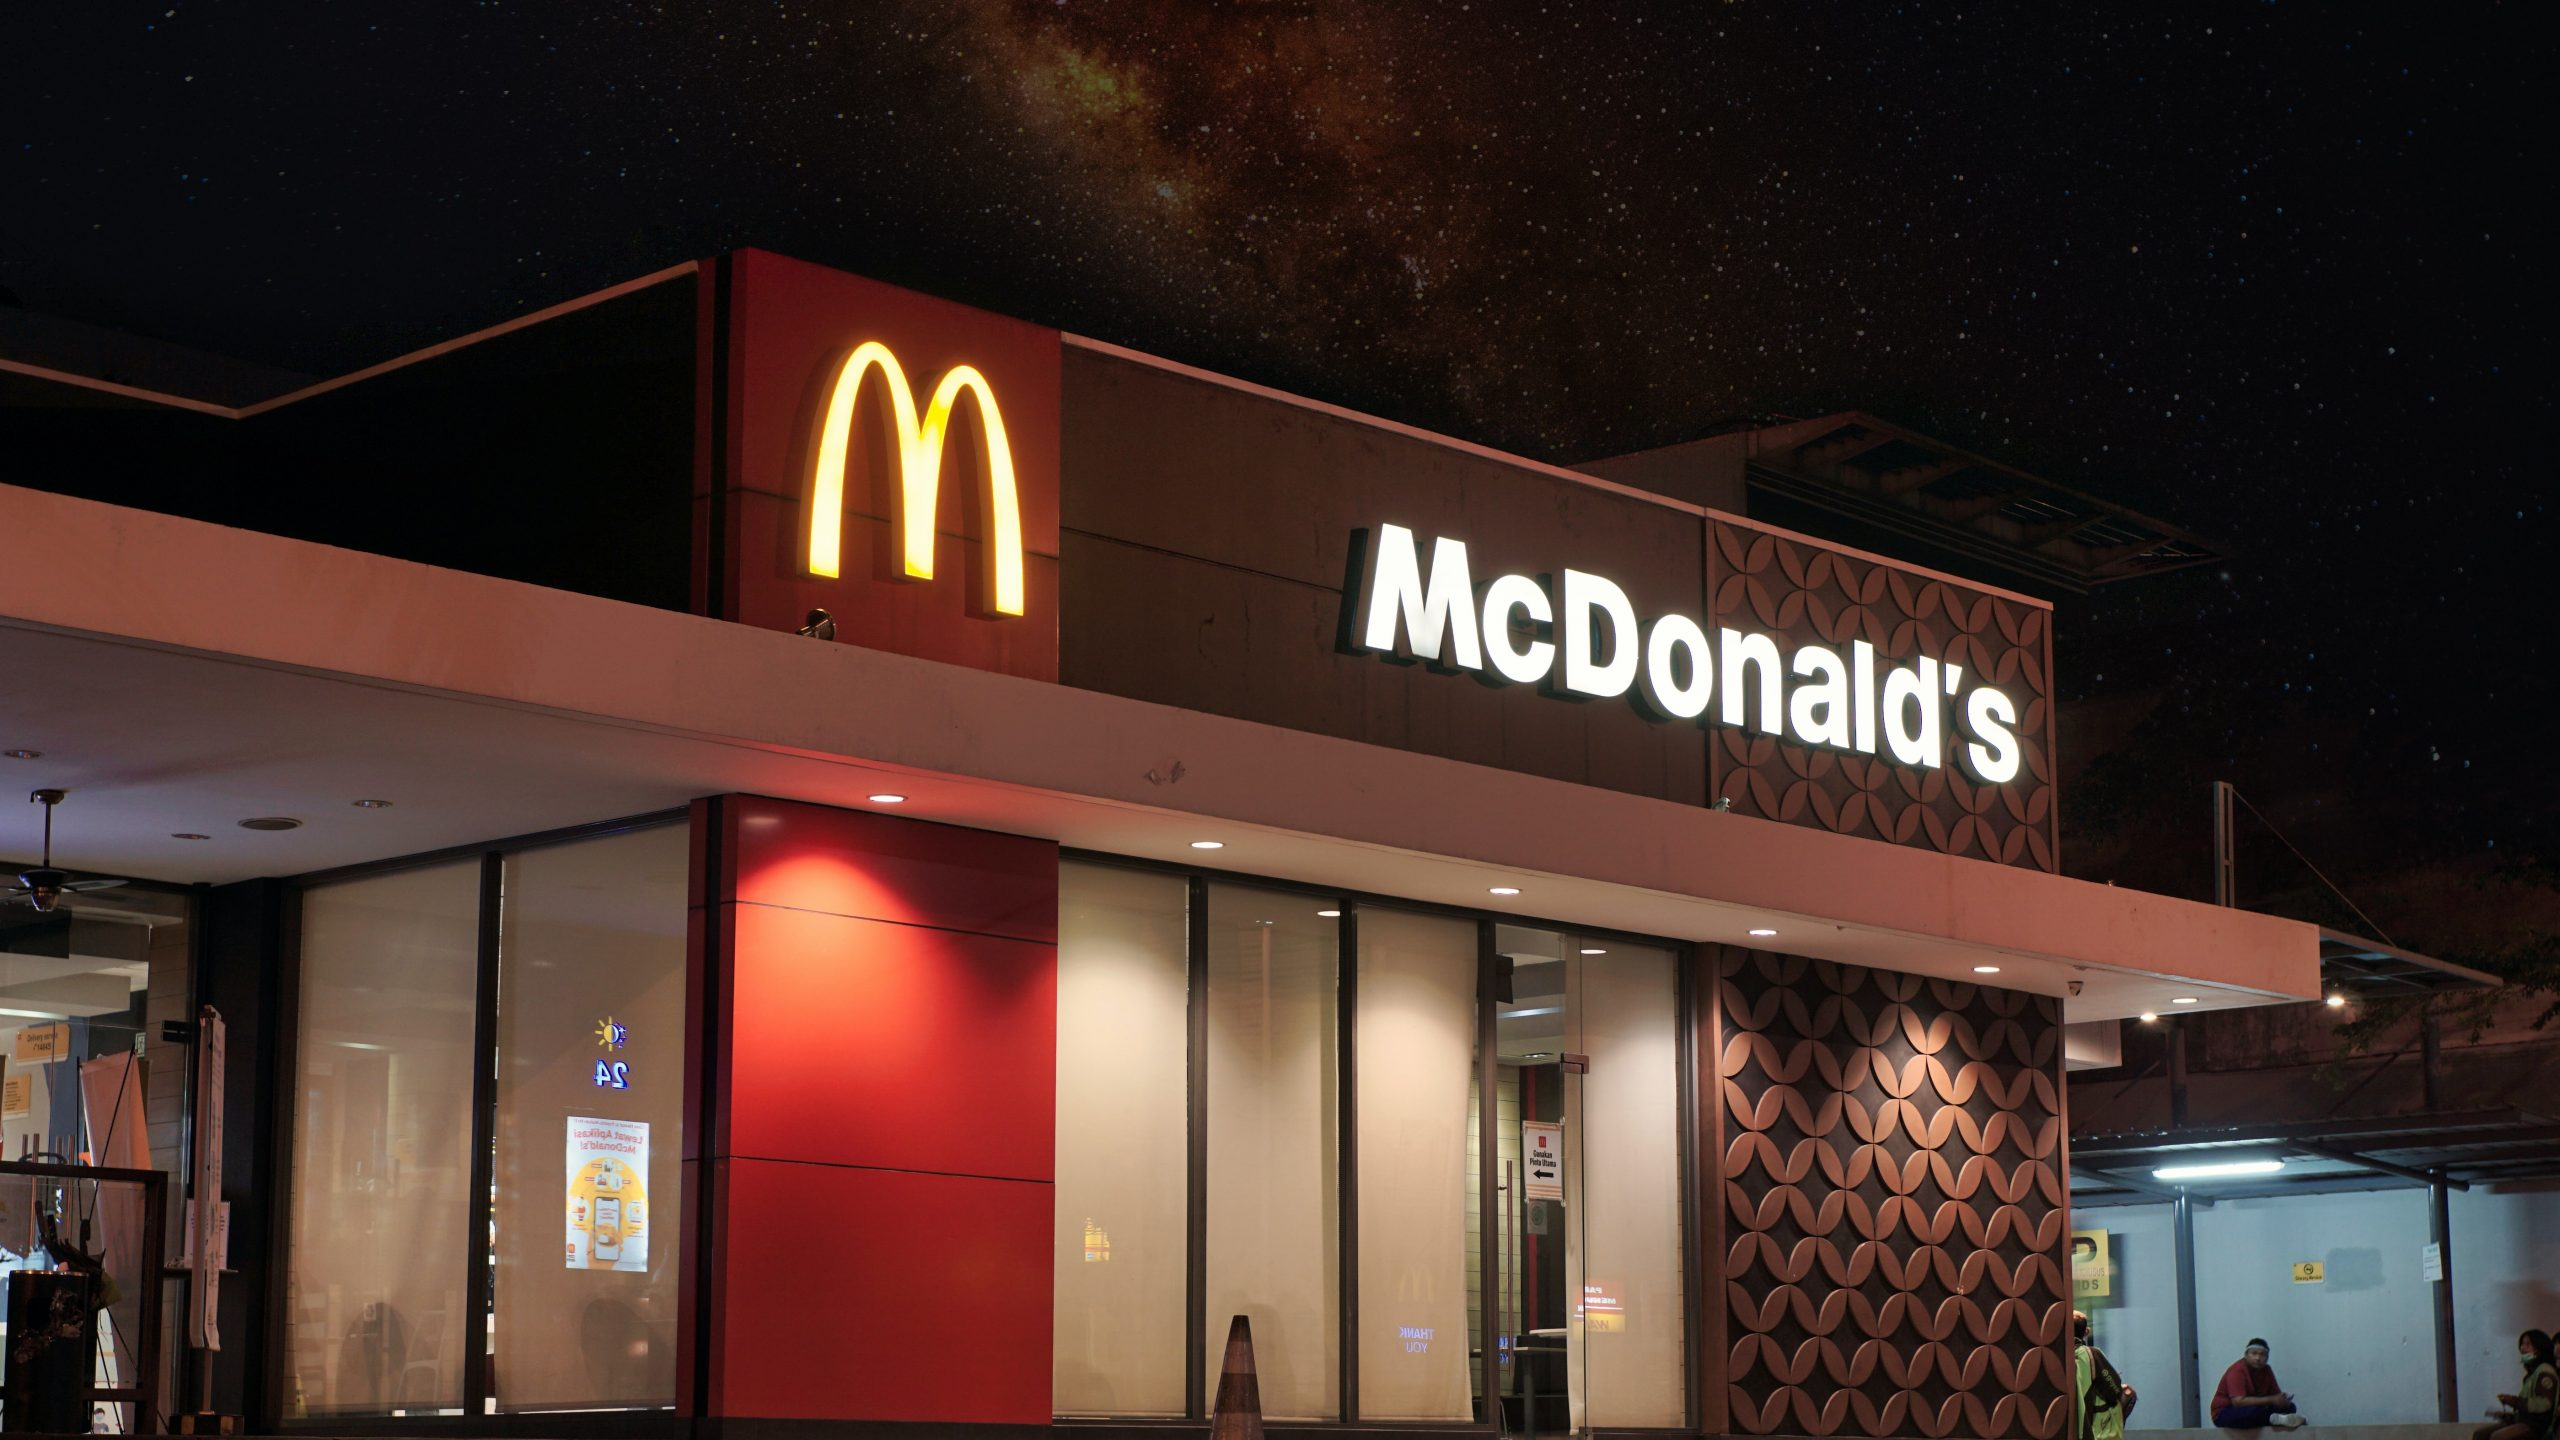 McDonald's and Loop join forces on reusable coffee cup pilot